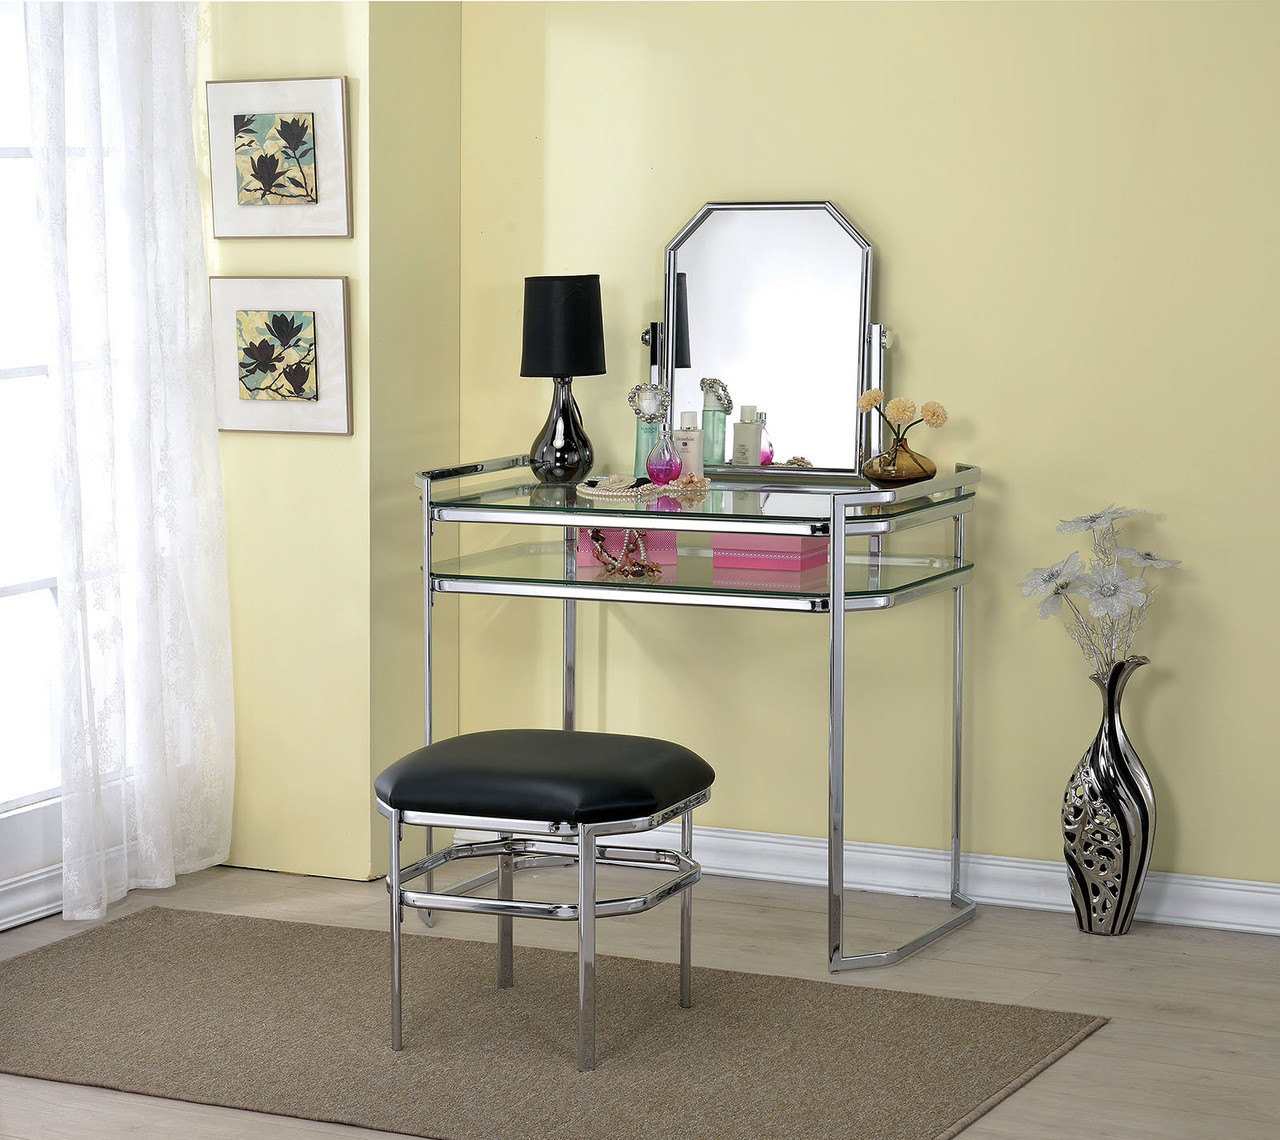 Arabella Gold Metal Makeup Vanity Table Set With Mirror